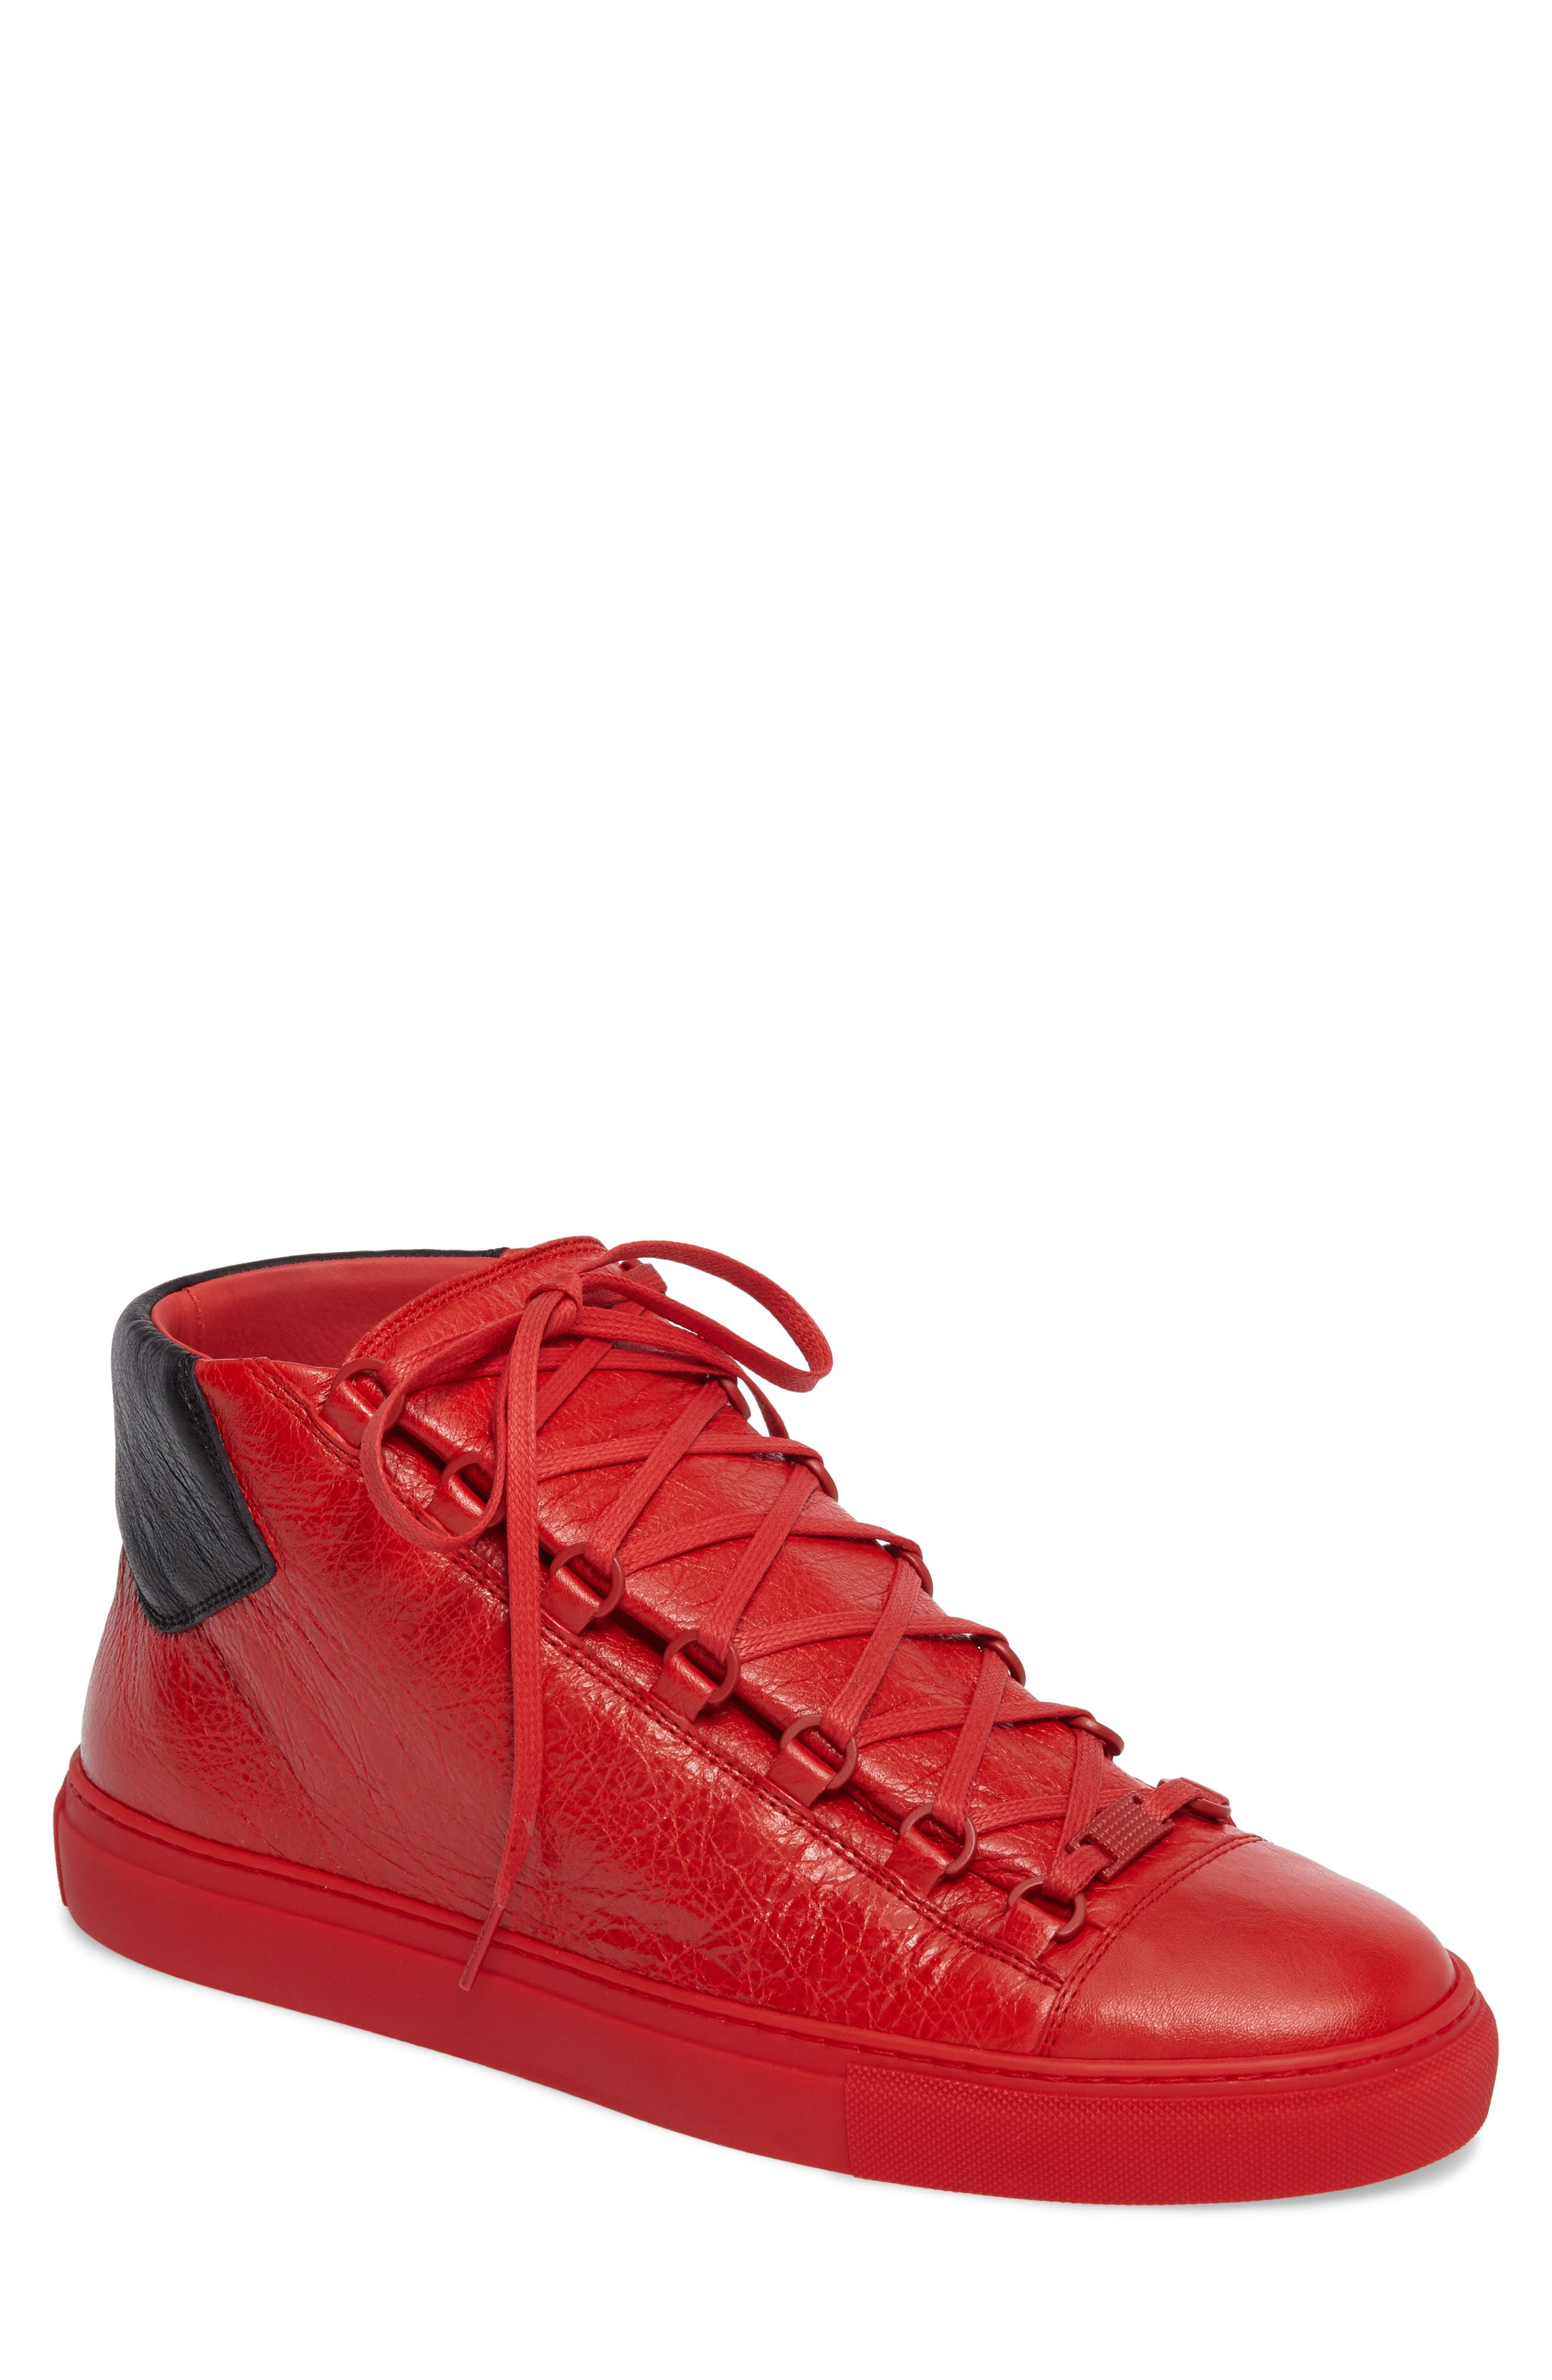 Arena High Sneaker,                         Main,                         color, Rouge Paprika/ Noir Leather